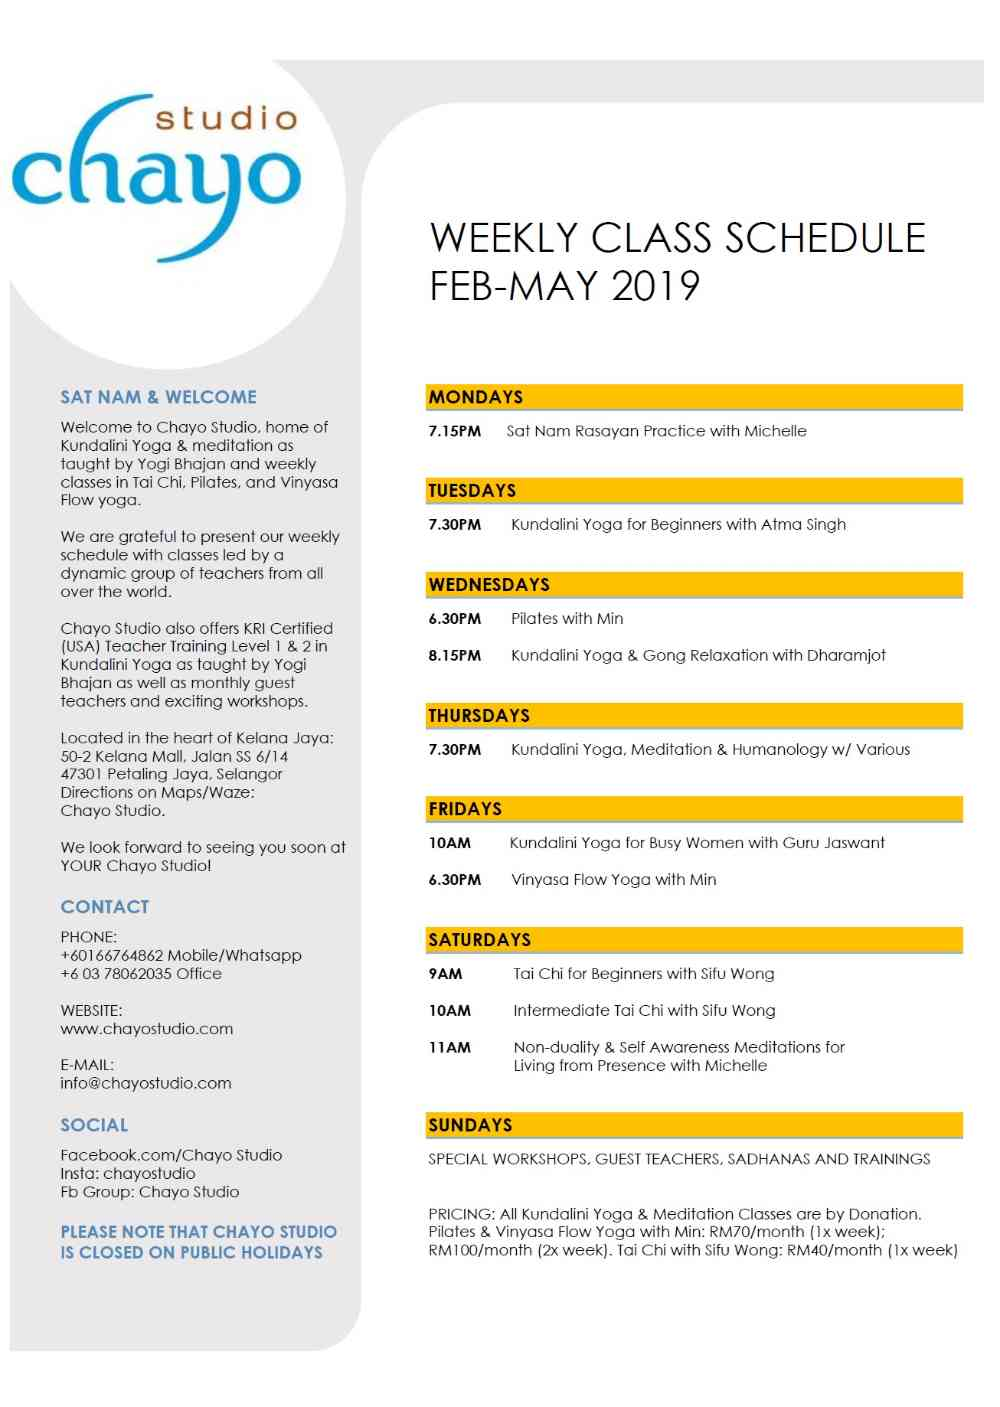 Weekly Schedule Feb to May 2019